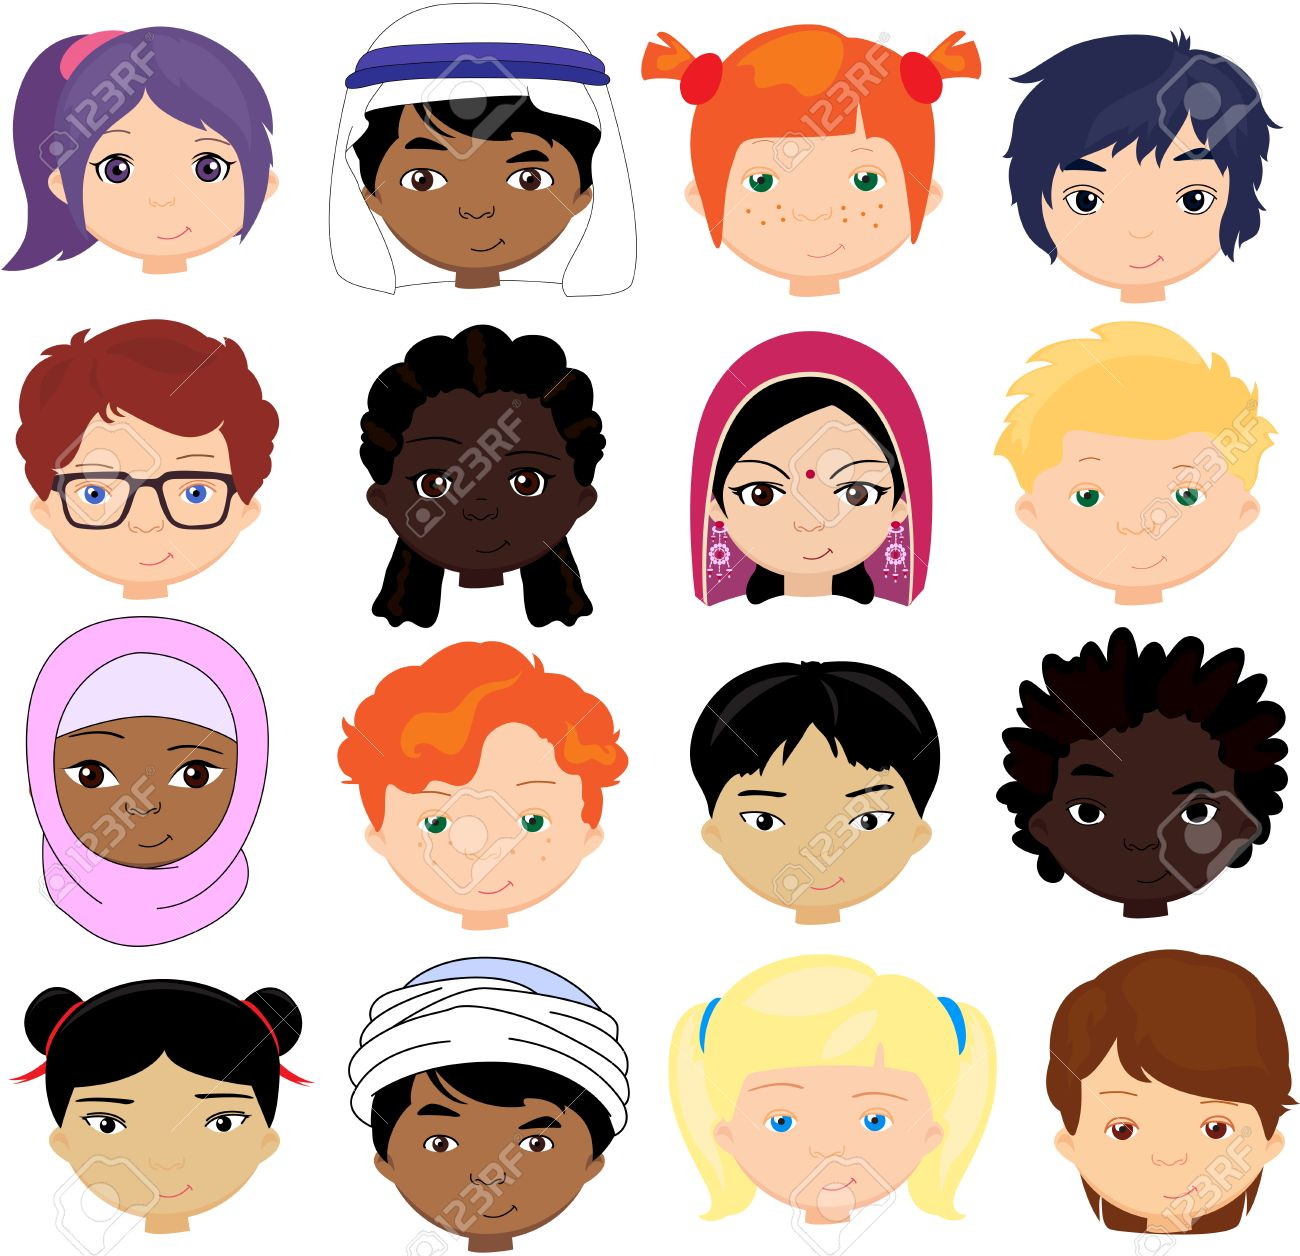 Boys and girls of different nationalities. Multinational children. Kids faces of different cultures. Vector cartoon illustration - 51313034